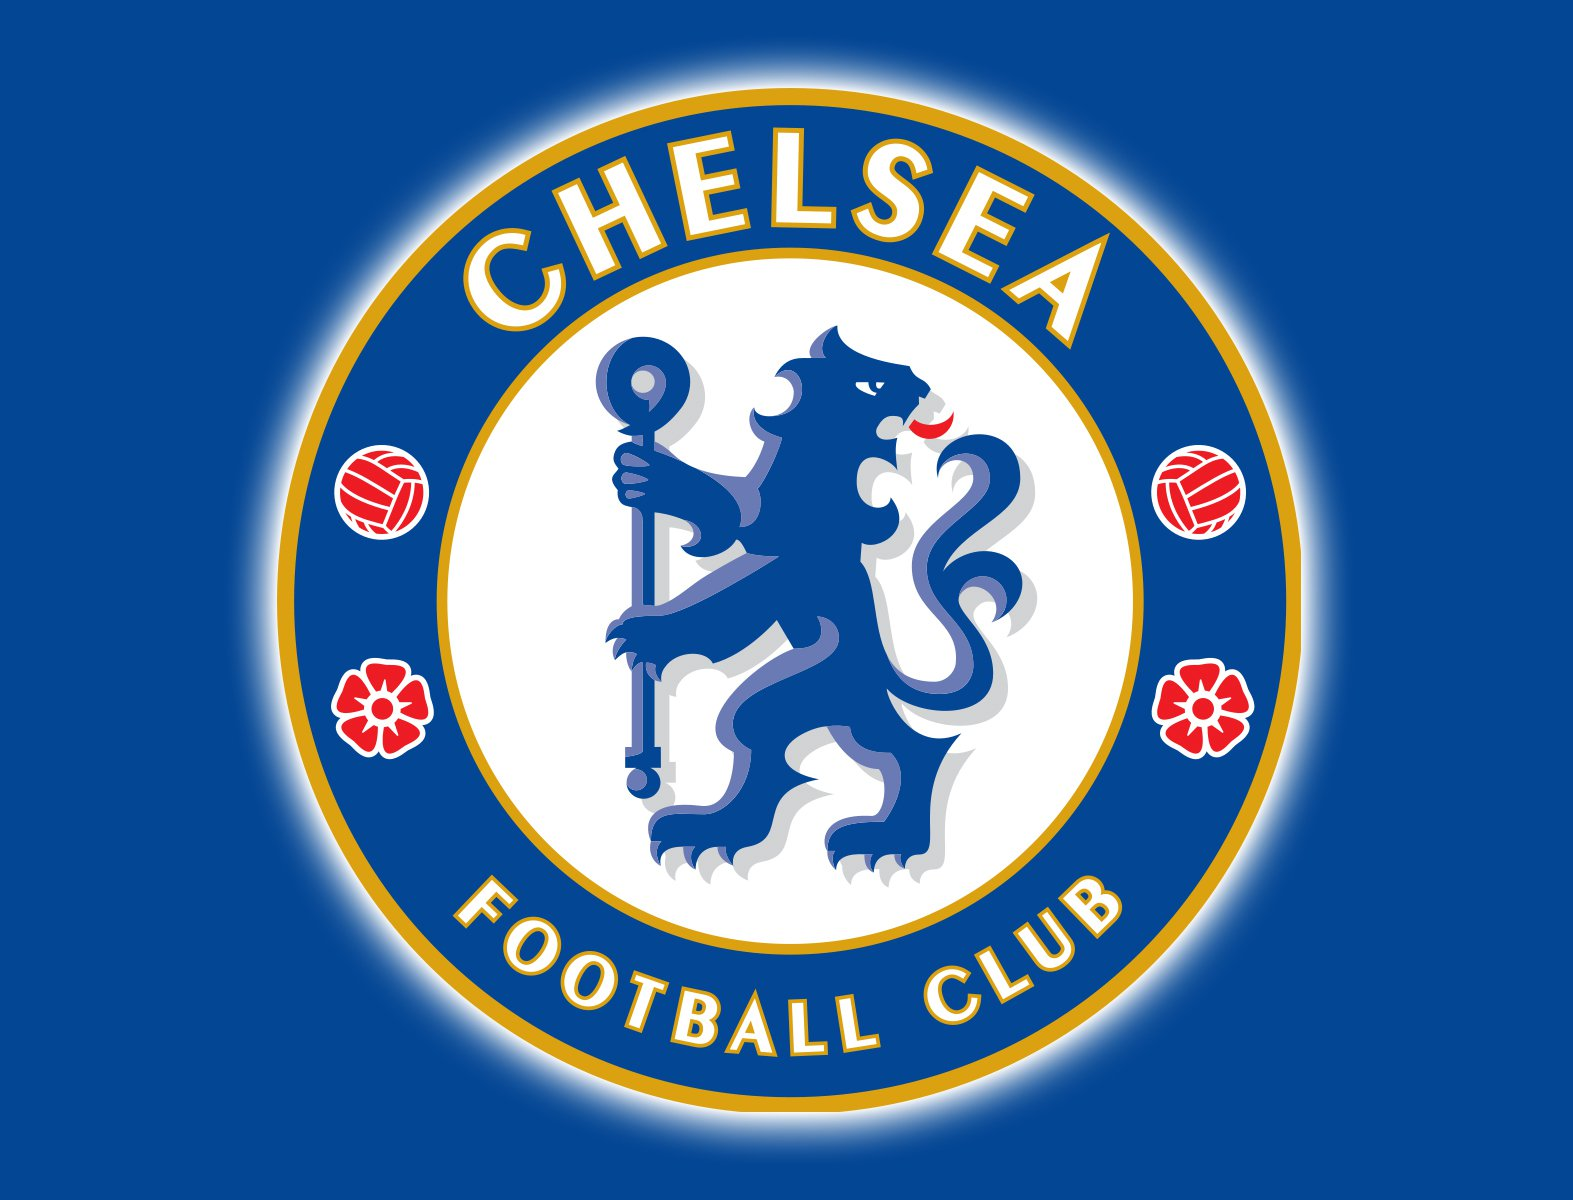 Evolution Logo, and Meaning, Chelsea History Symbol Chelsea